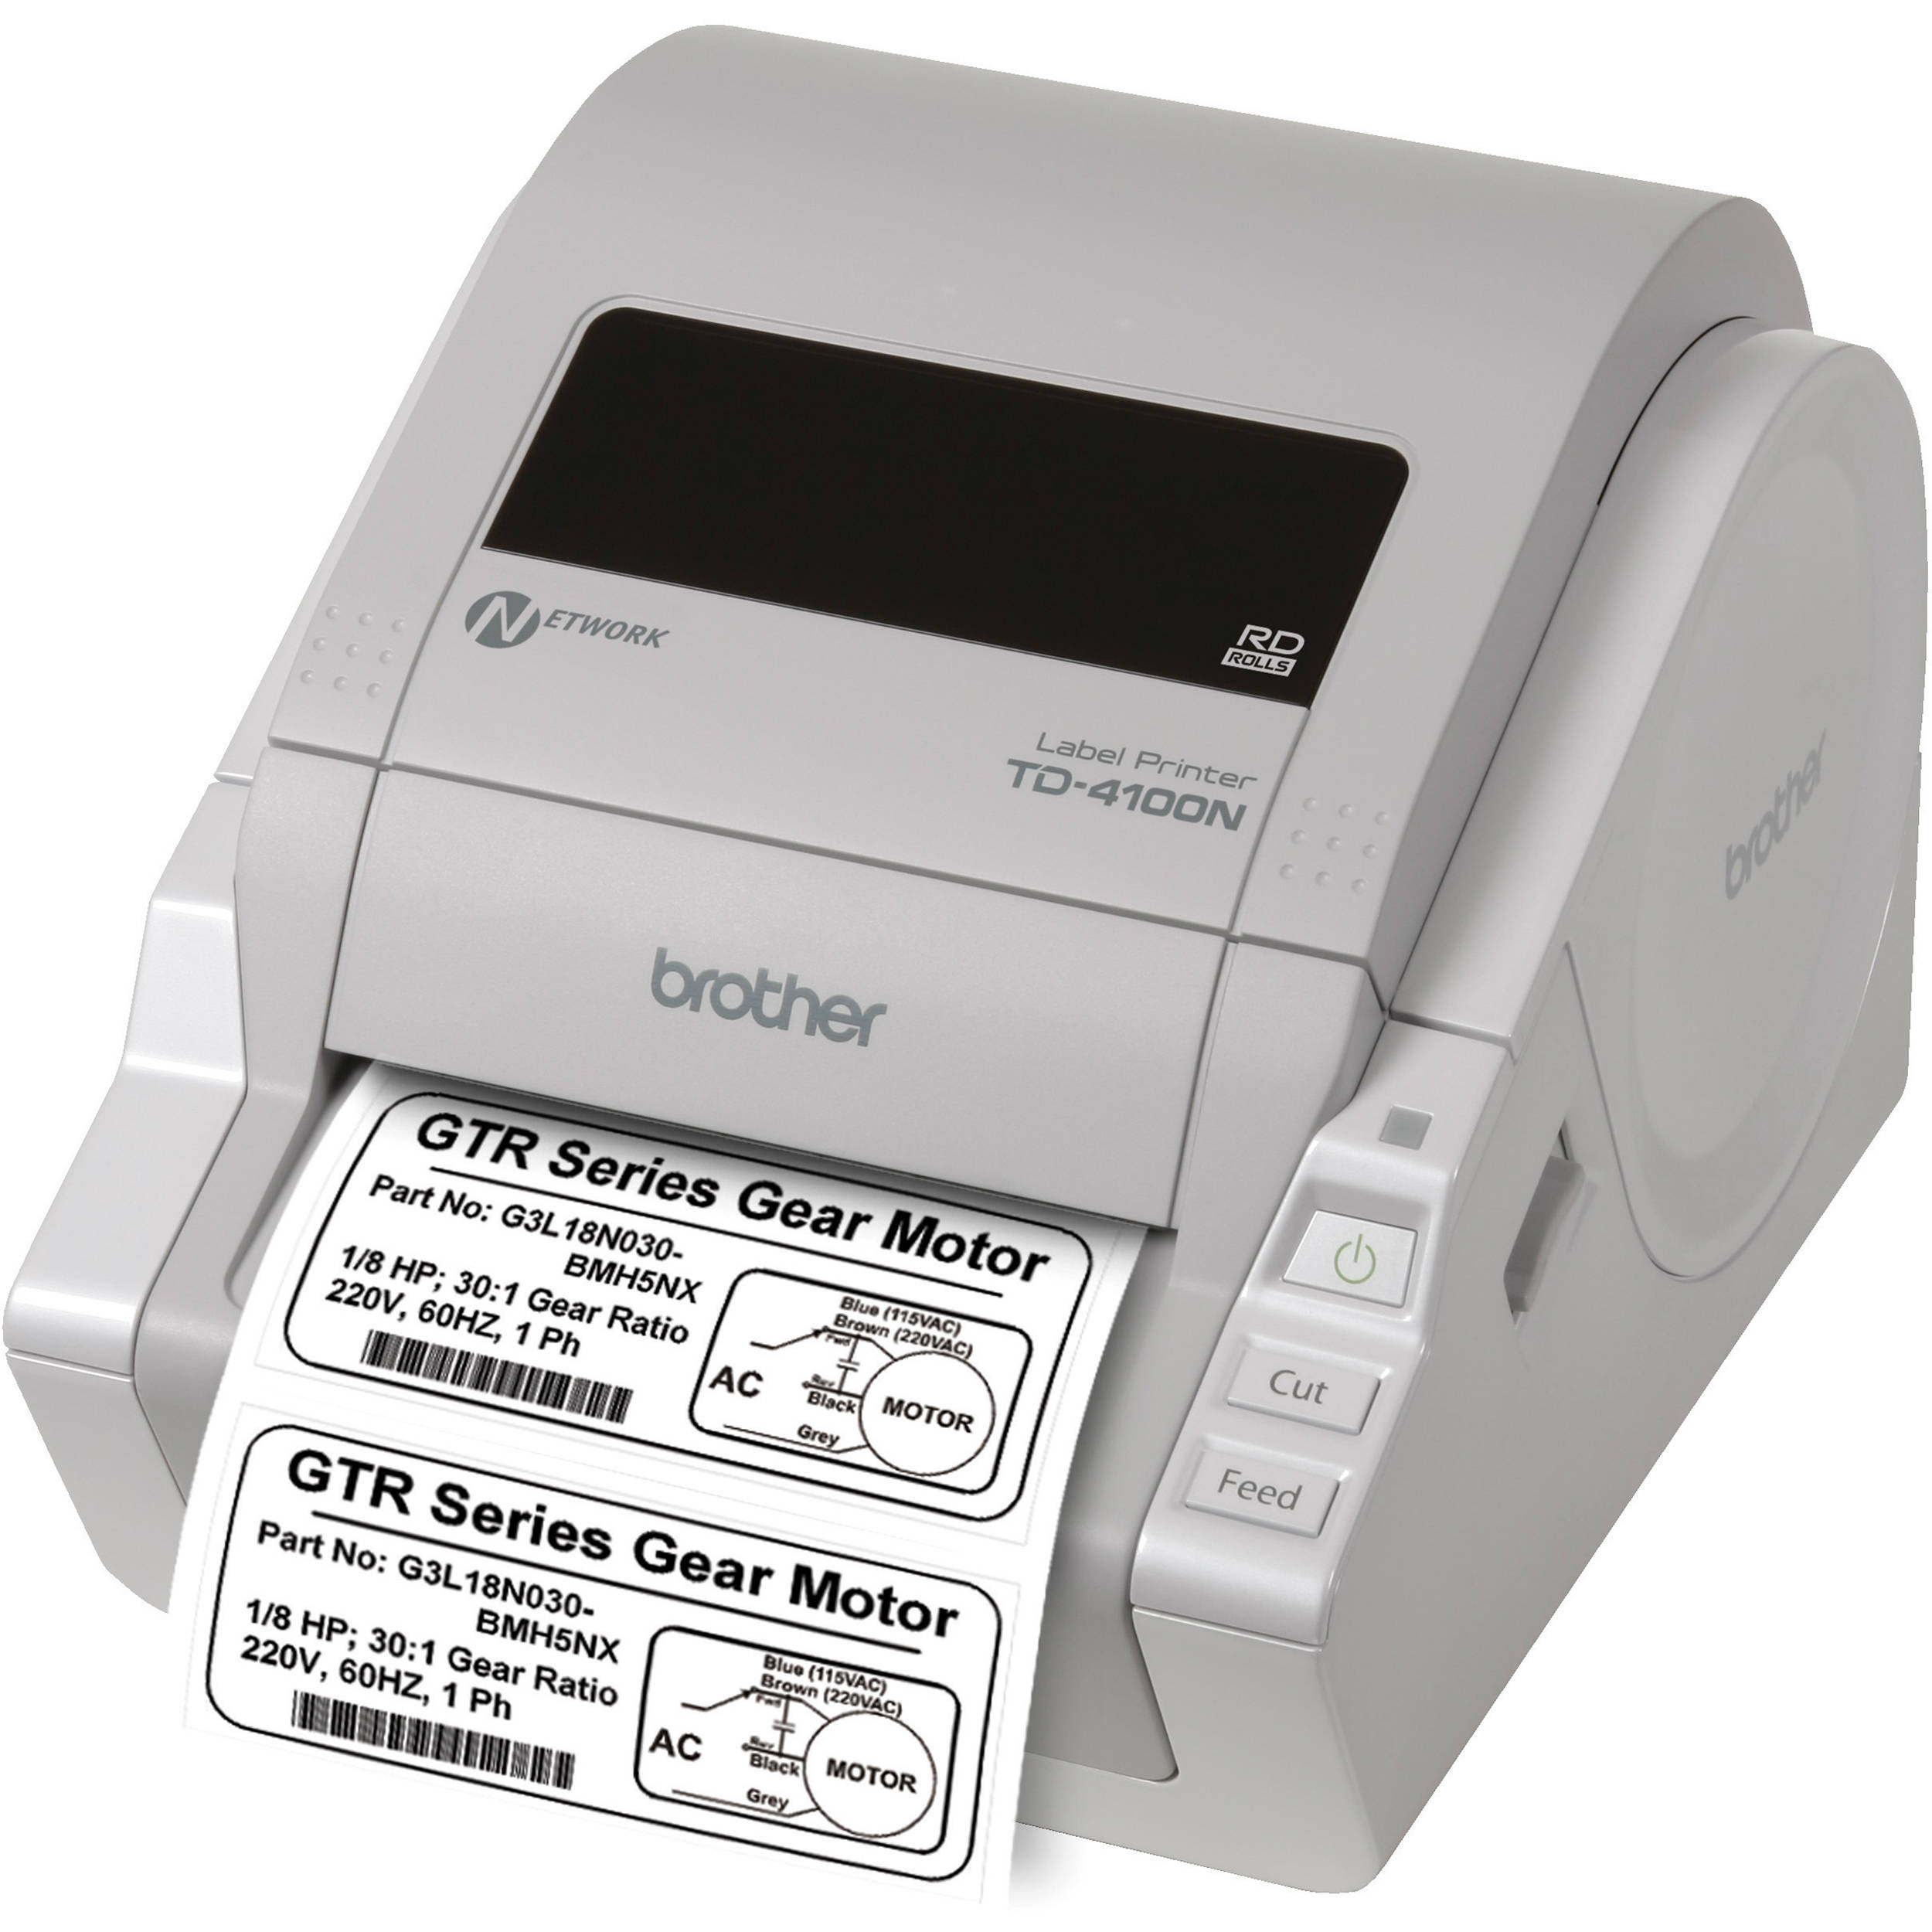 Brother TD-4100N Desktop Bar Code Network Printer